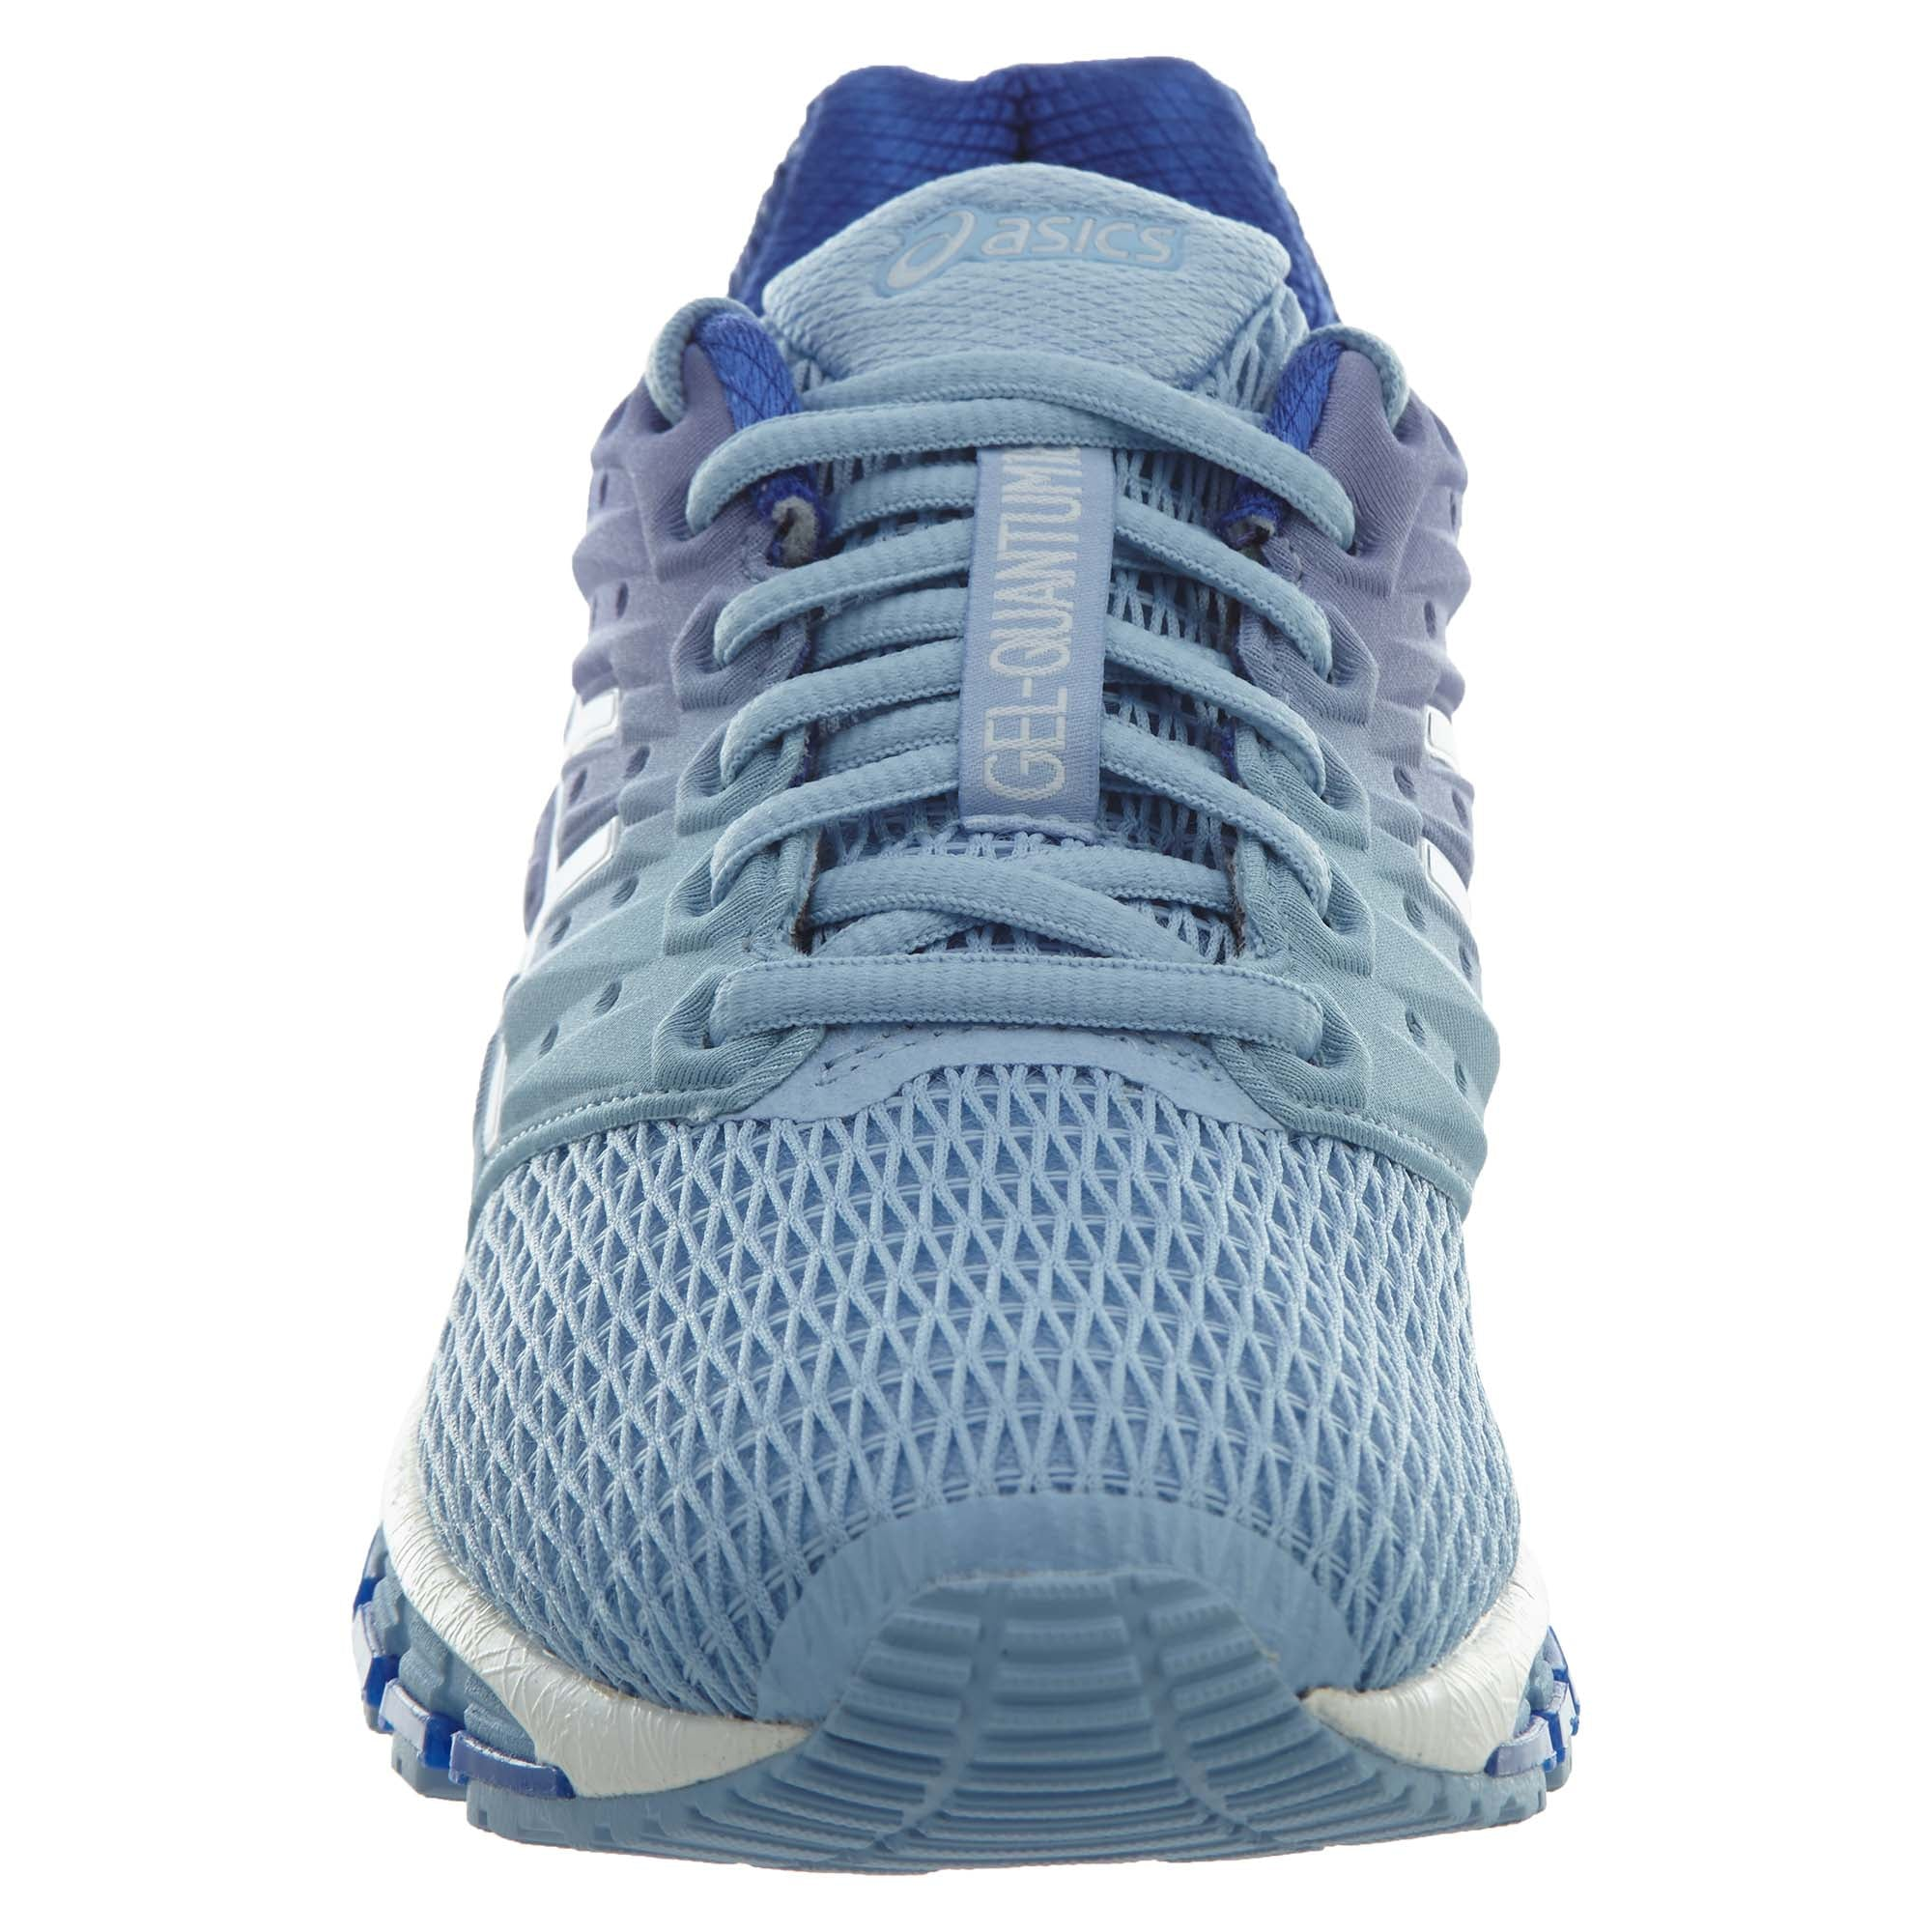 09985c2509947 Asics Gel-quantum 180 2 Womens Style : T6g7n. ASICS / Athletic Shoes &  Sneakers